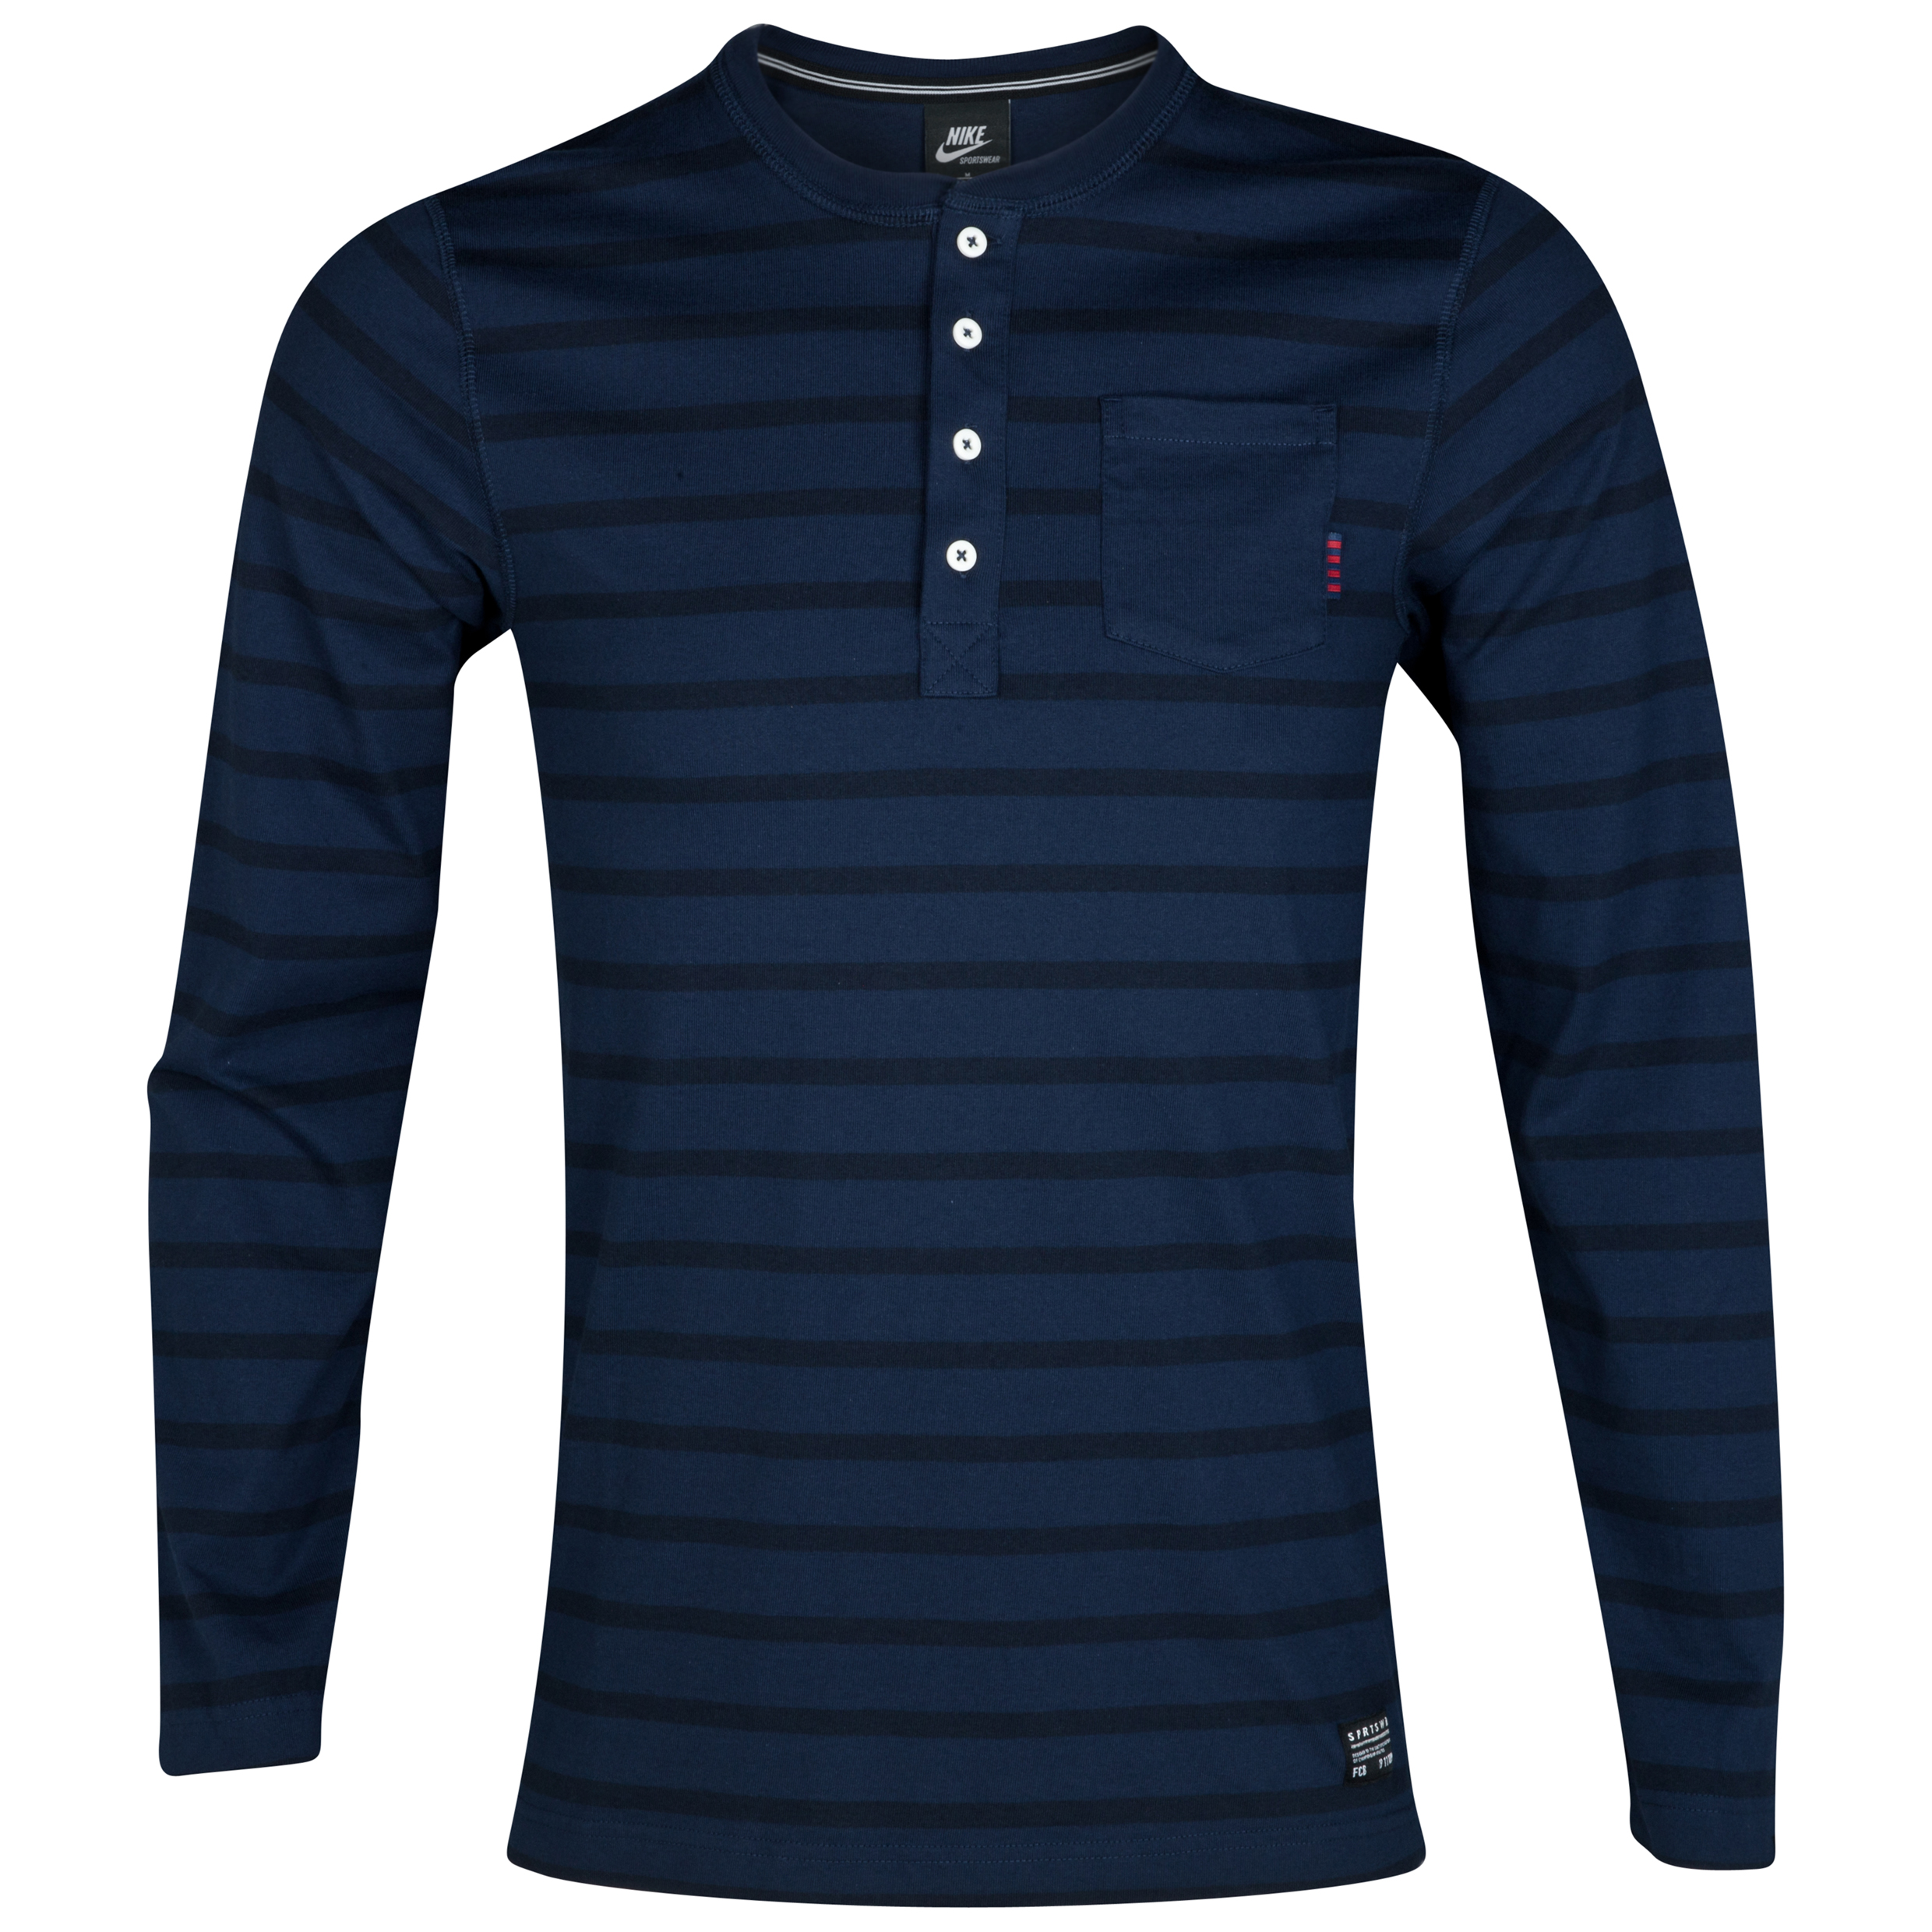 Barcelona NSW Henley Shirt - Long Sleeve - Dark Obsidian/Obsidian